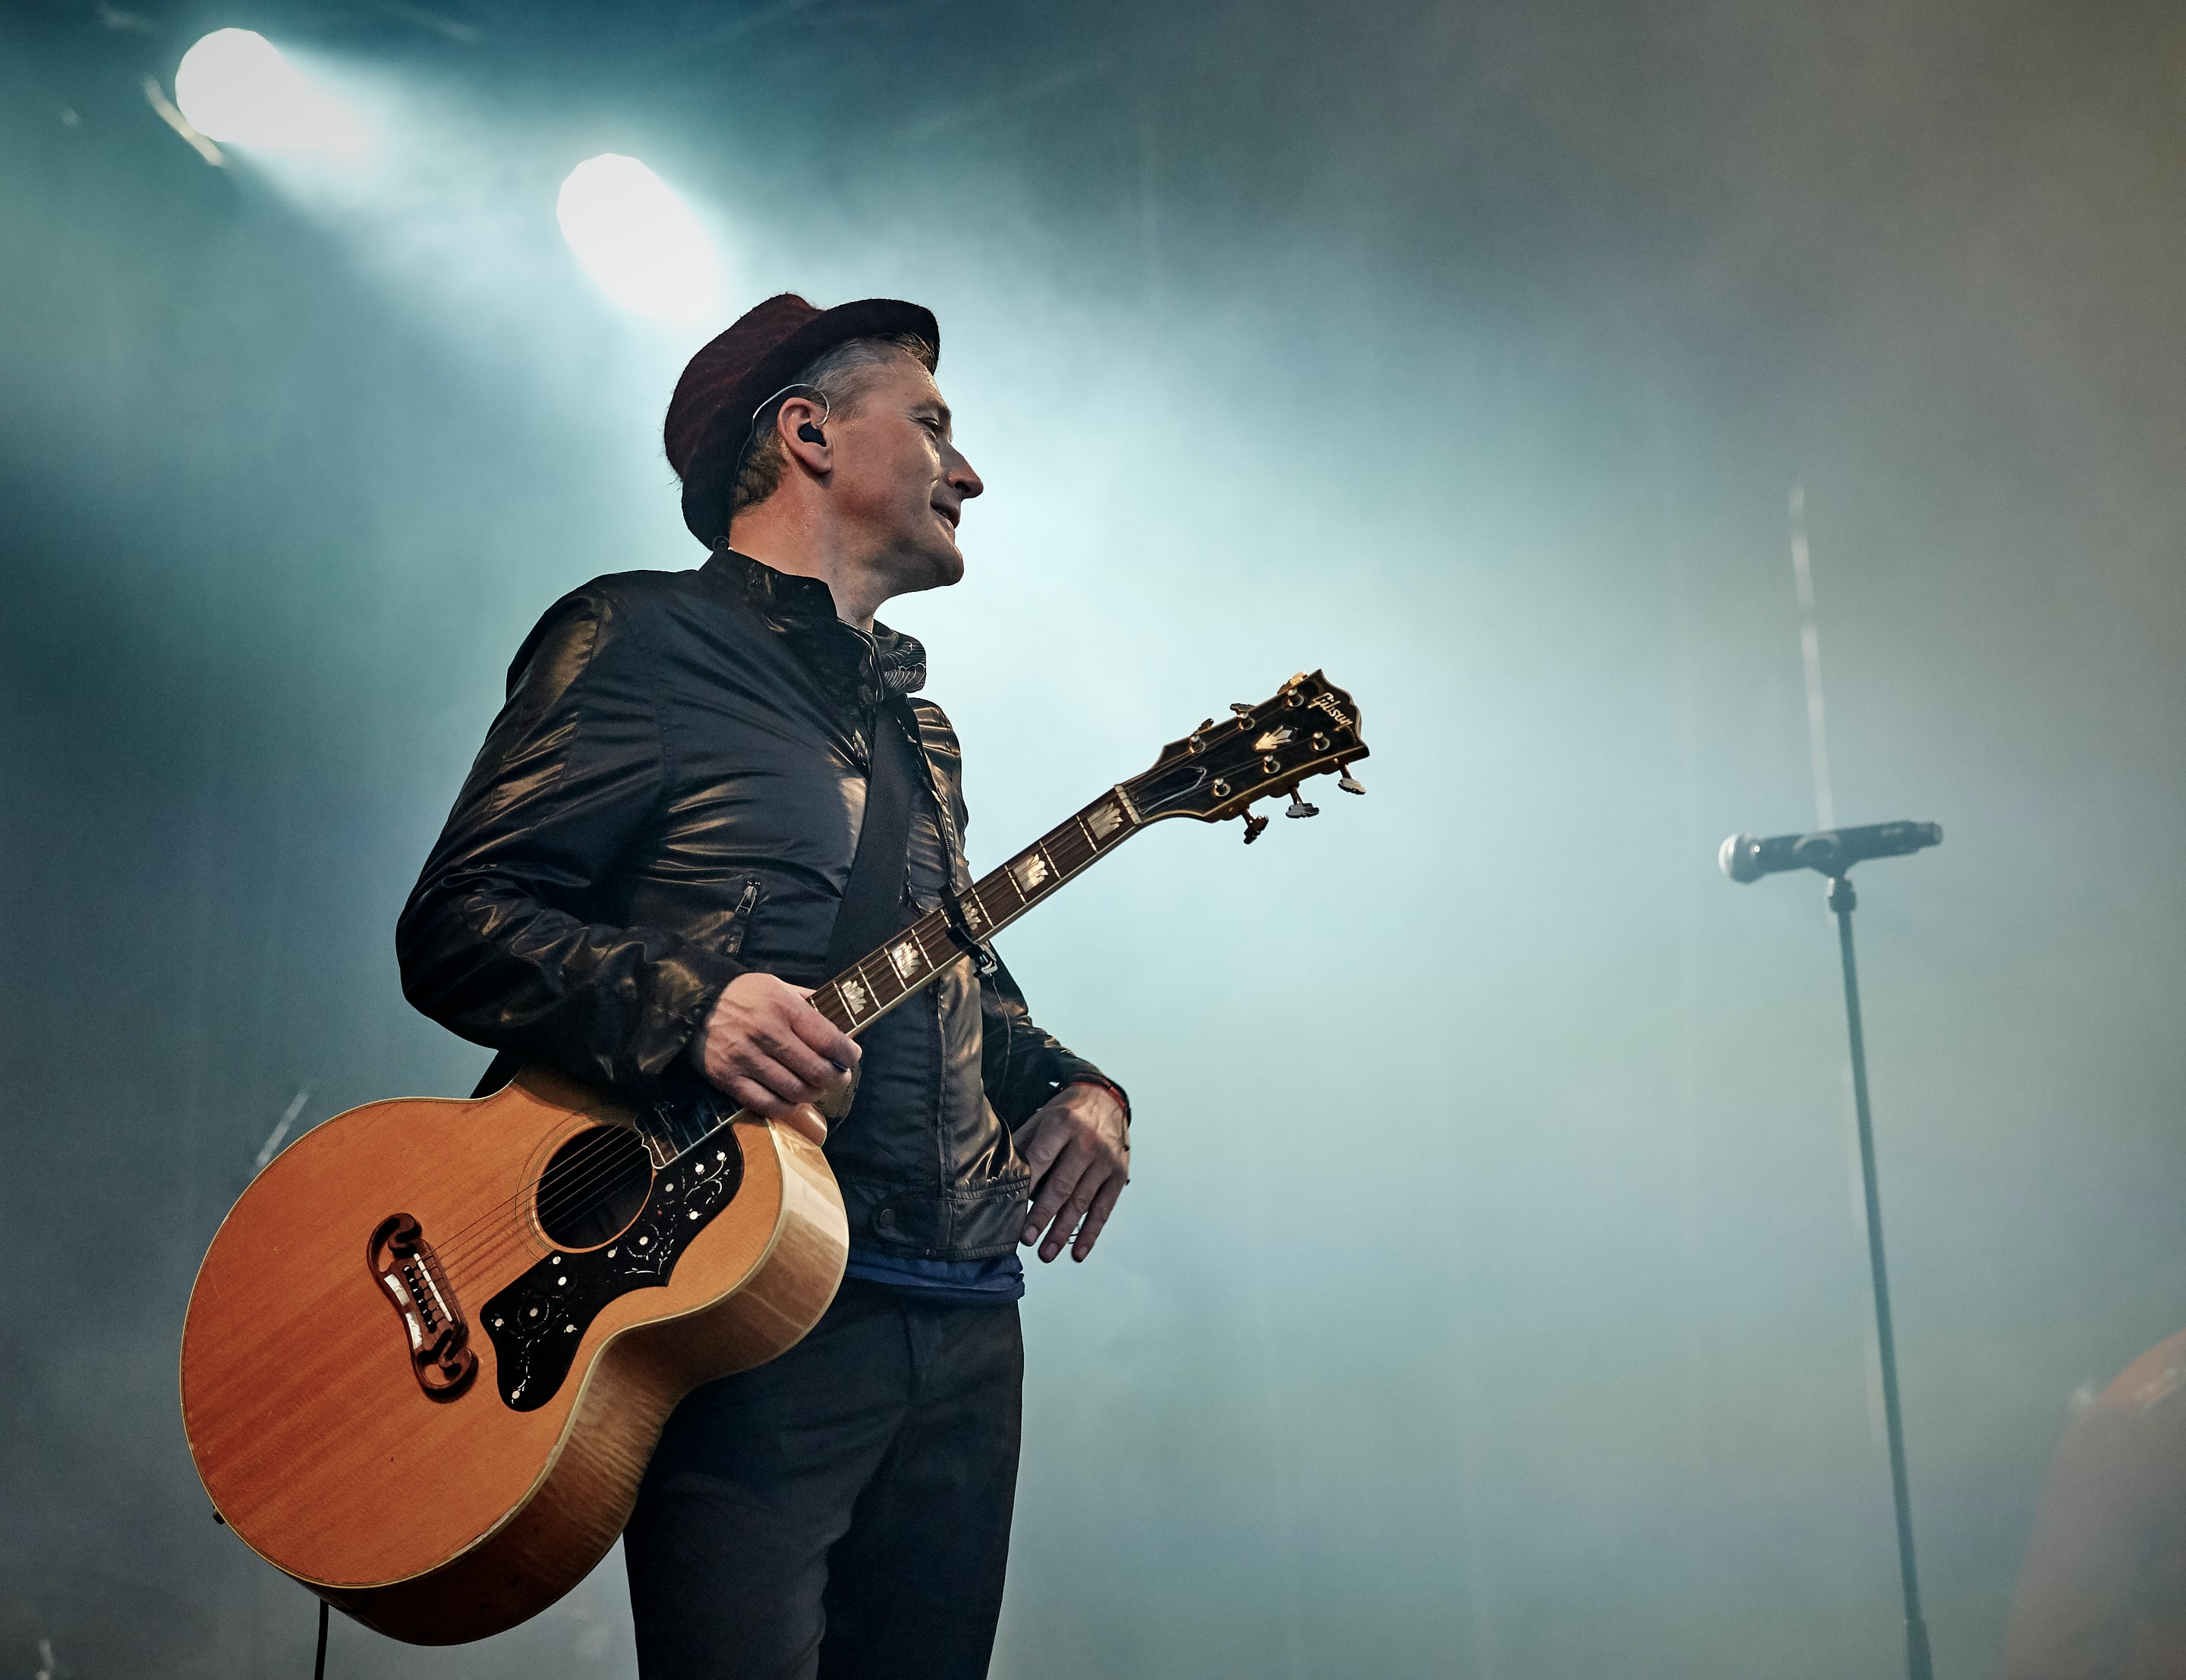 man holding acoustic guitar beside microphone with stand